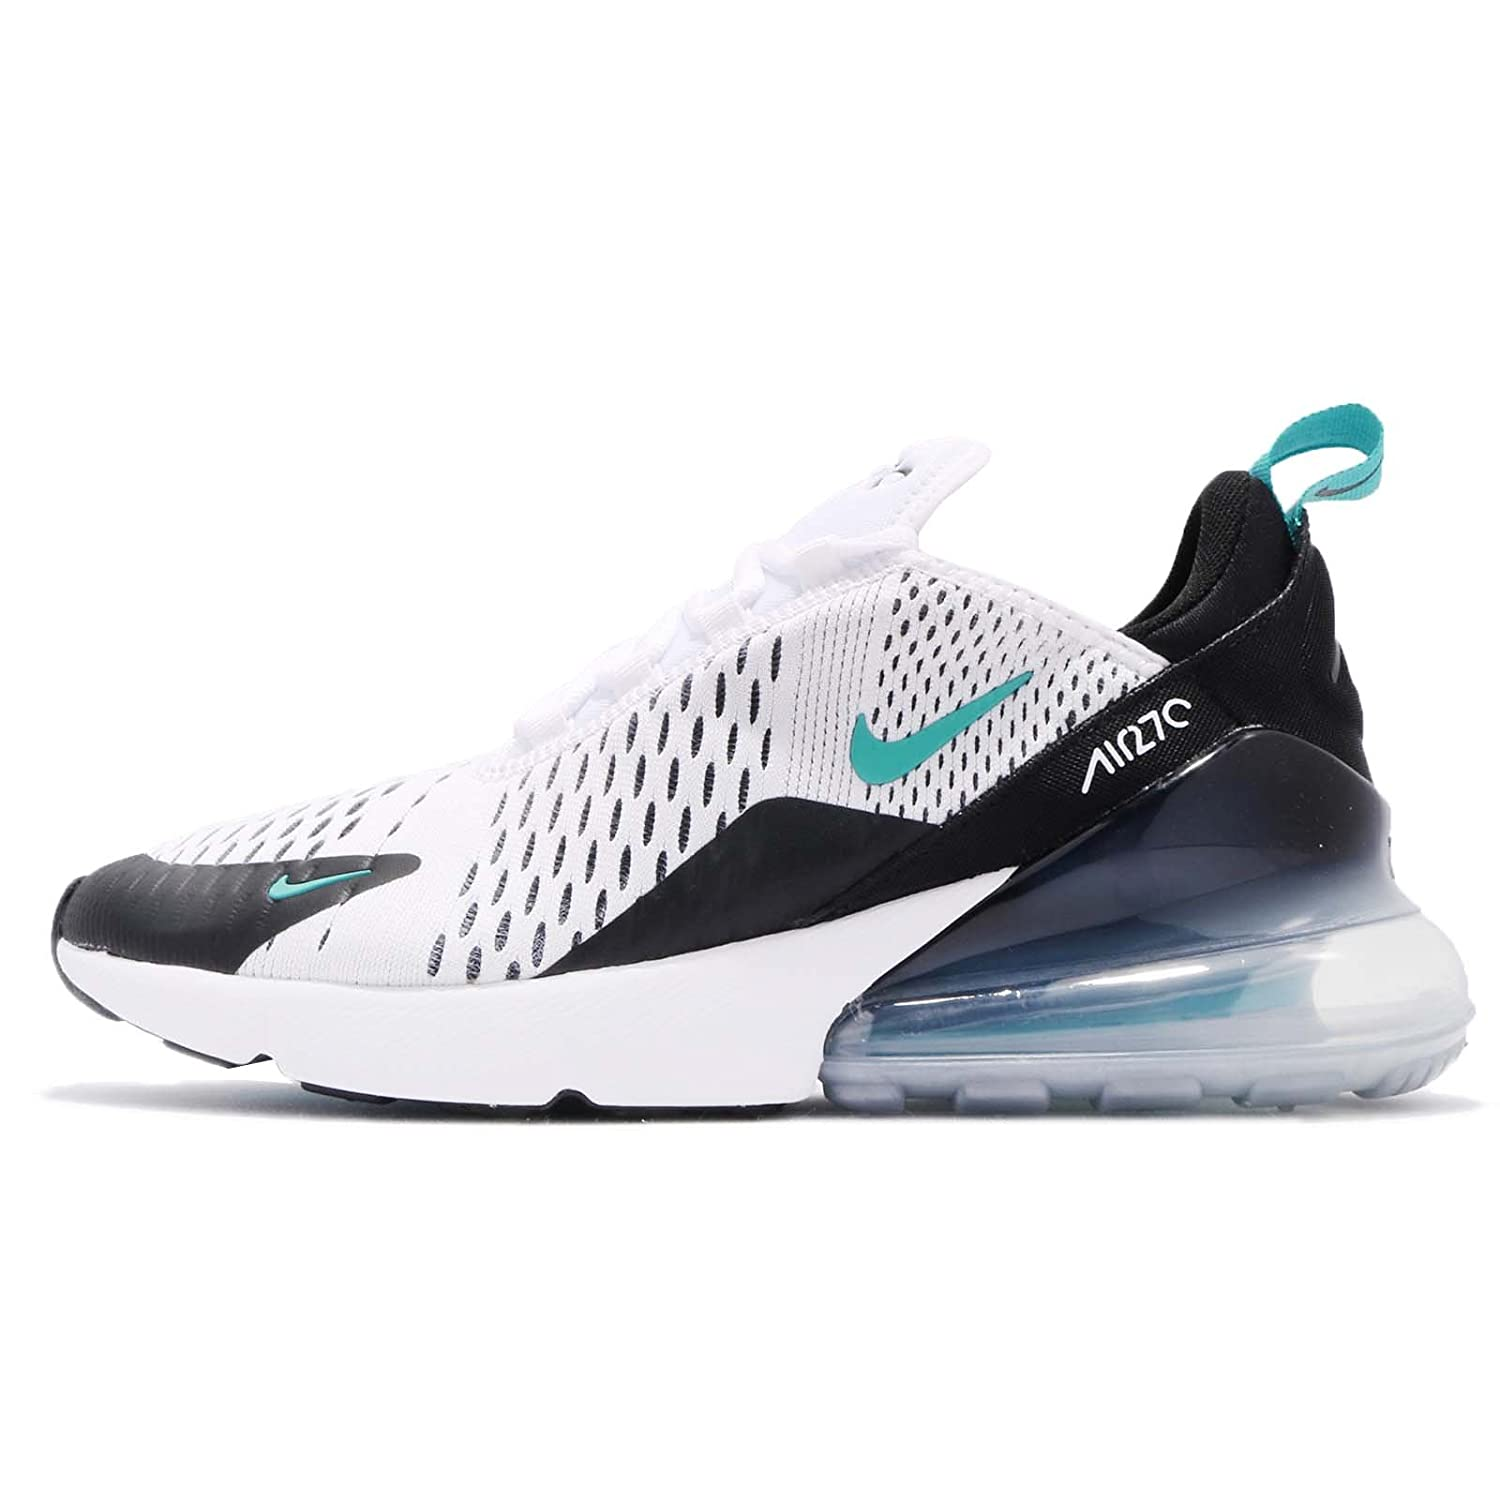 Amazon.com: NIKE Kids Air Max 270 GS, White/Dusty Cactus-Black, Youth Size 6.5: Shoes